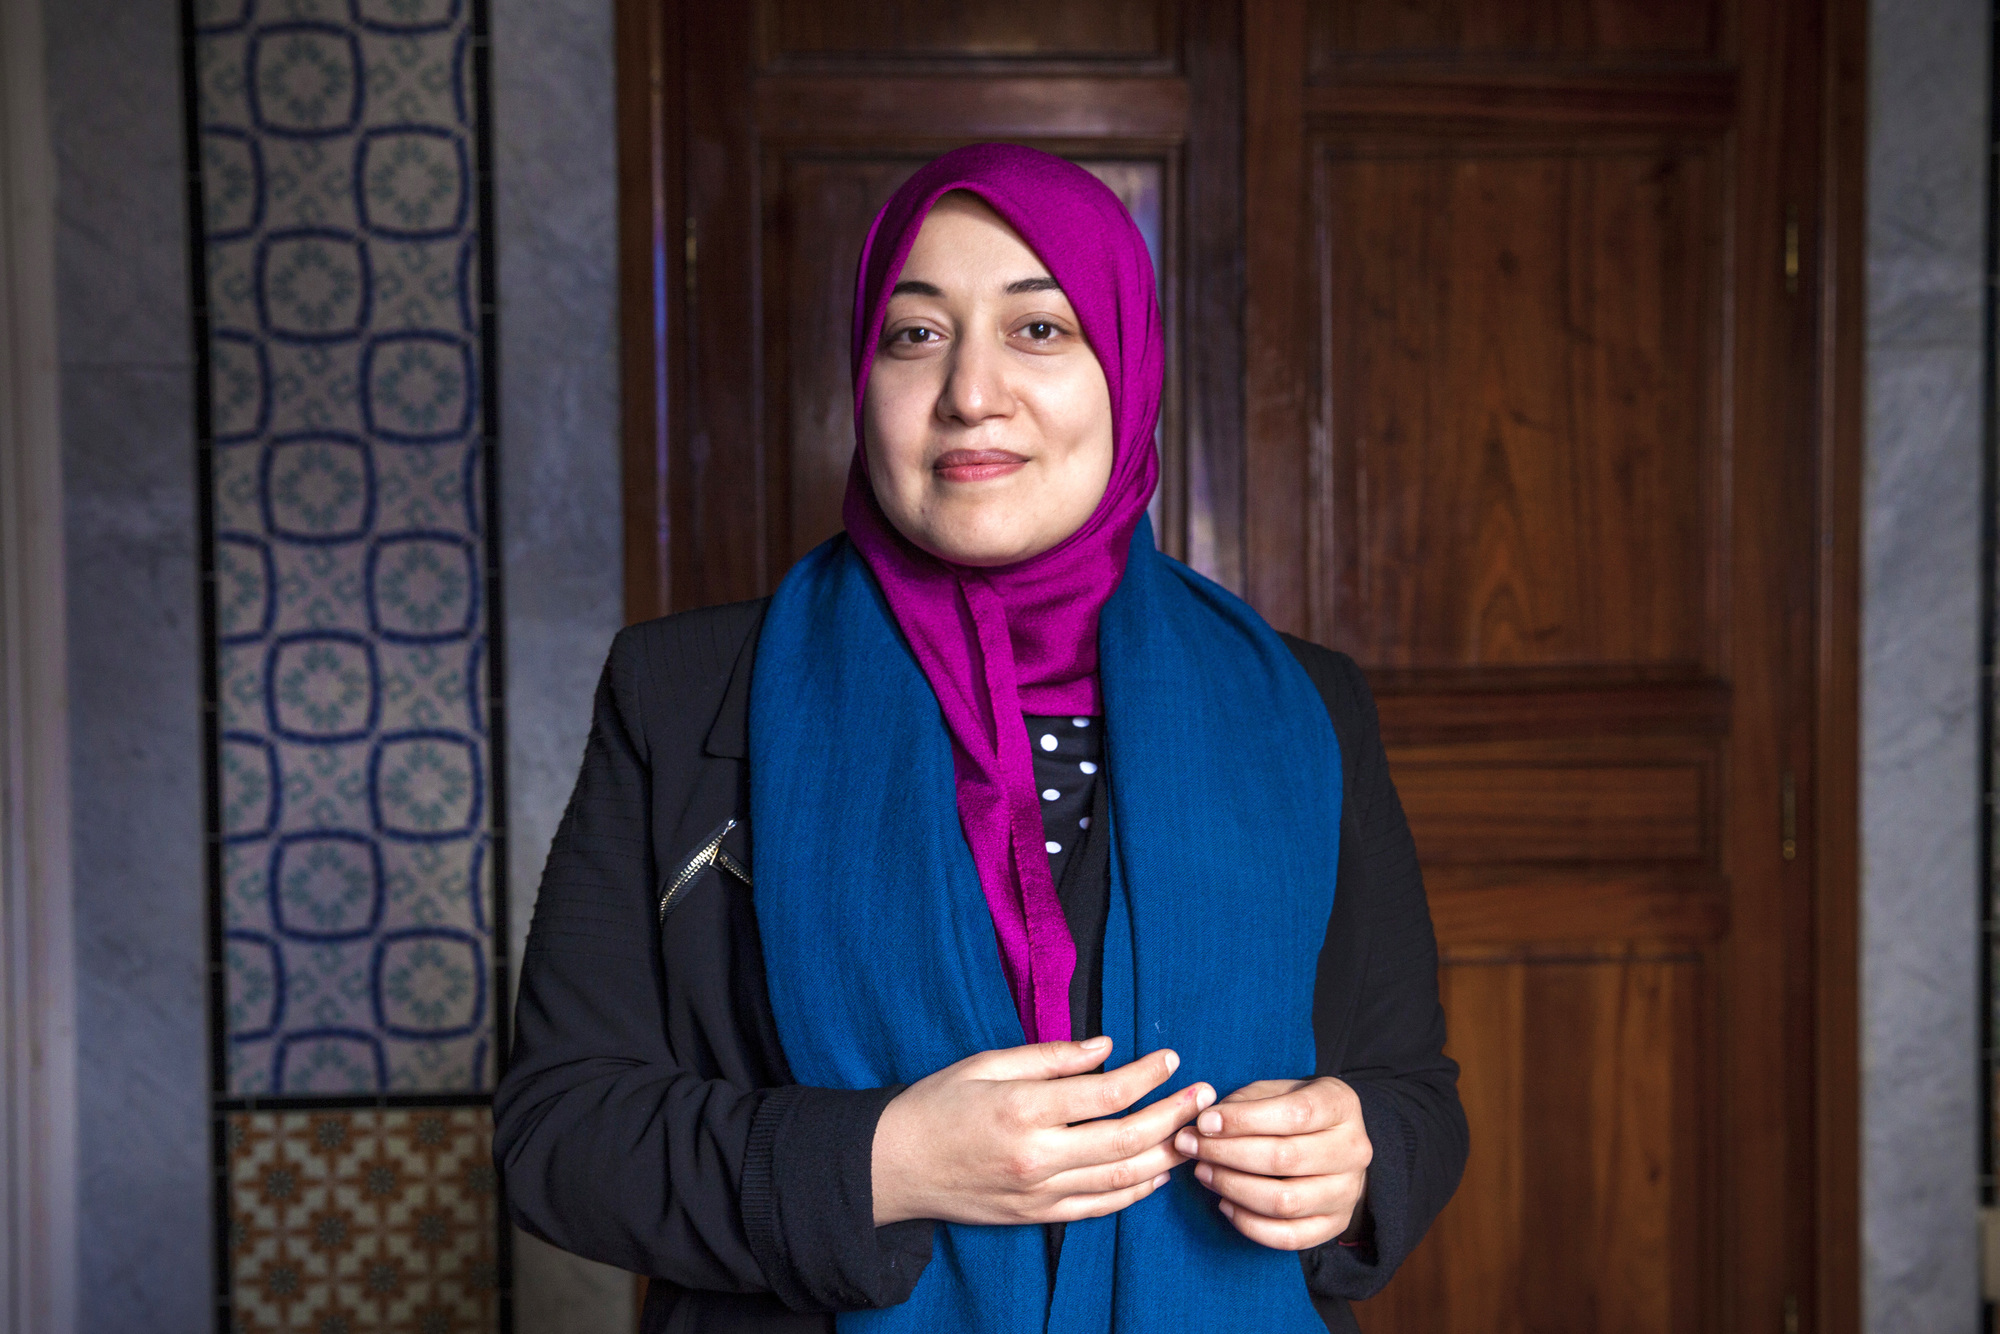 Tunisia, Tunis : Sayida Ounissi the deputy of Ennahdha party poses in the Assembly of People's Representatives (ARP) in Bardo on 16 March 2015. Ons Abid for JA